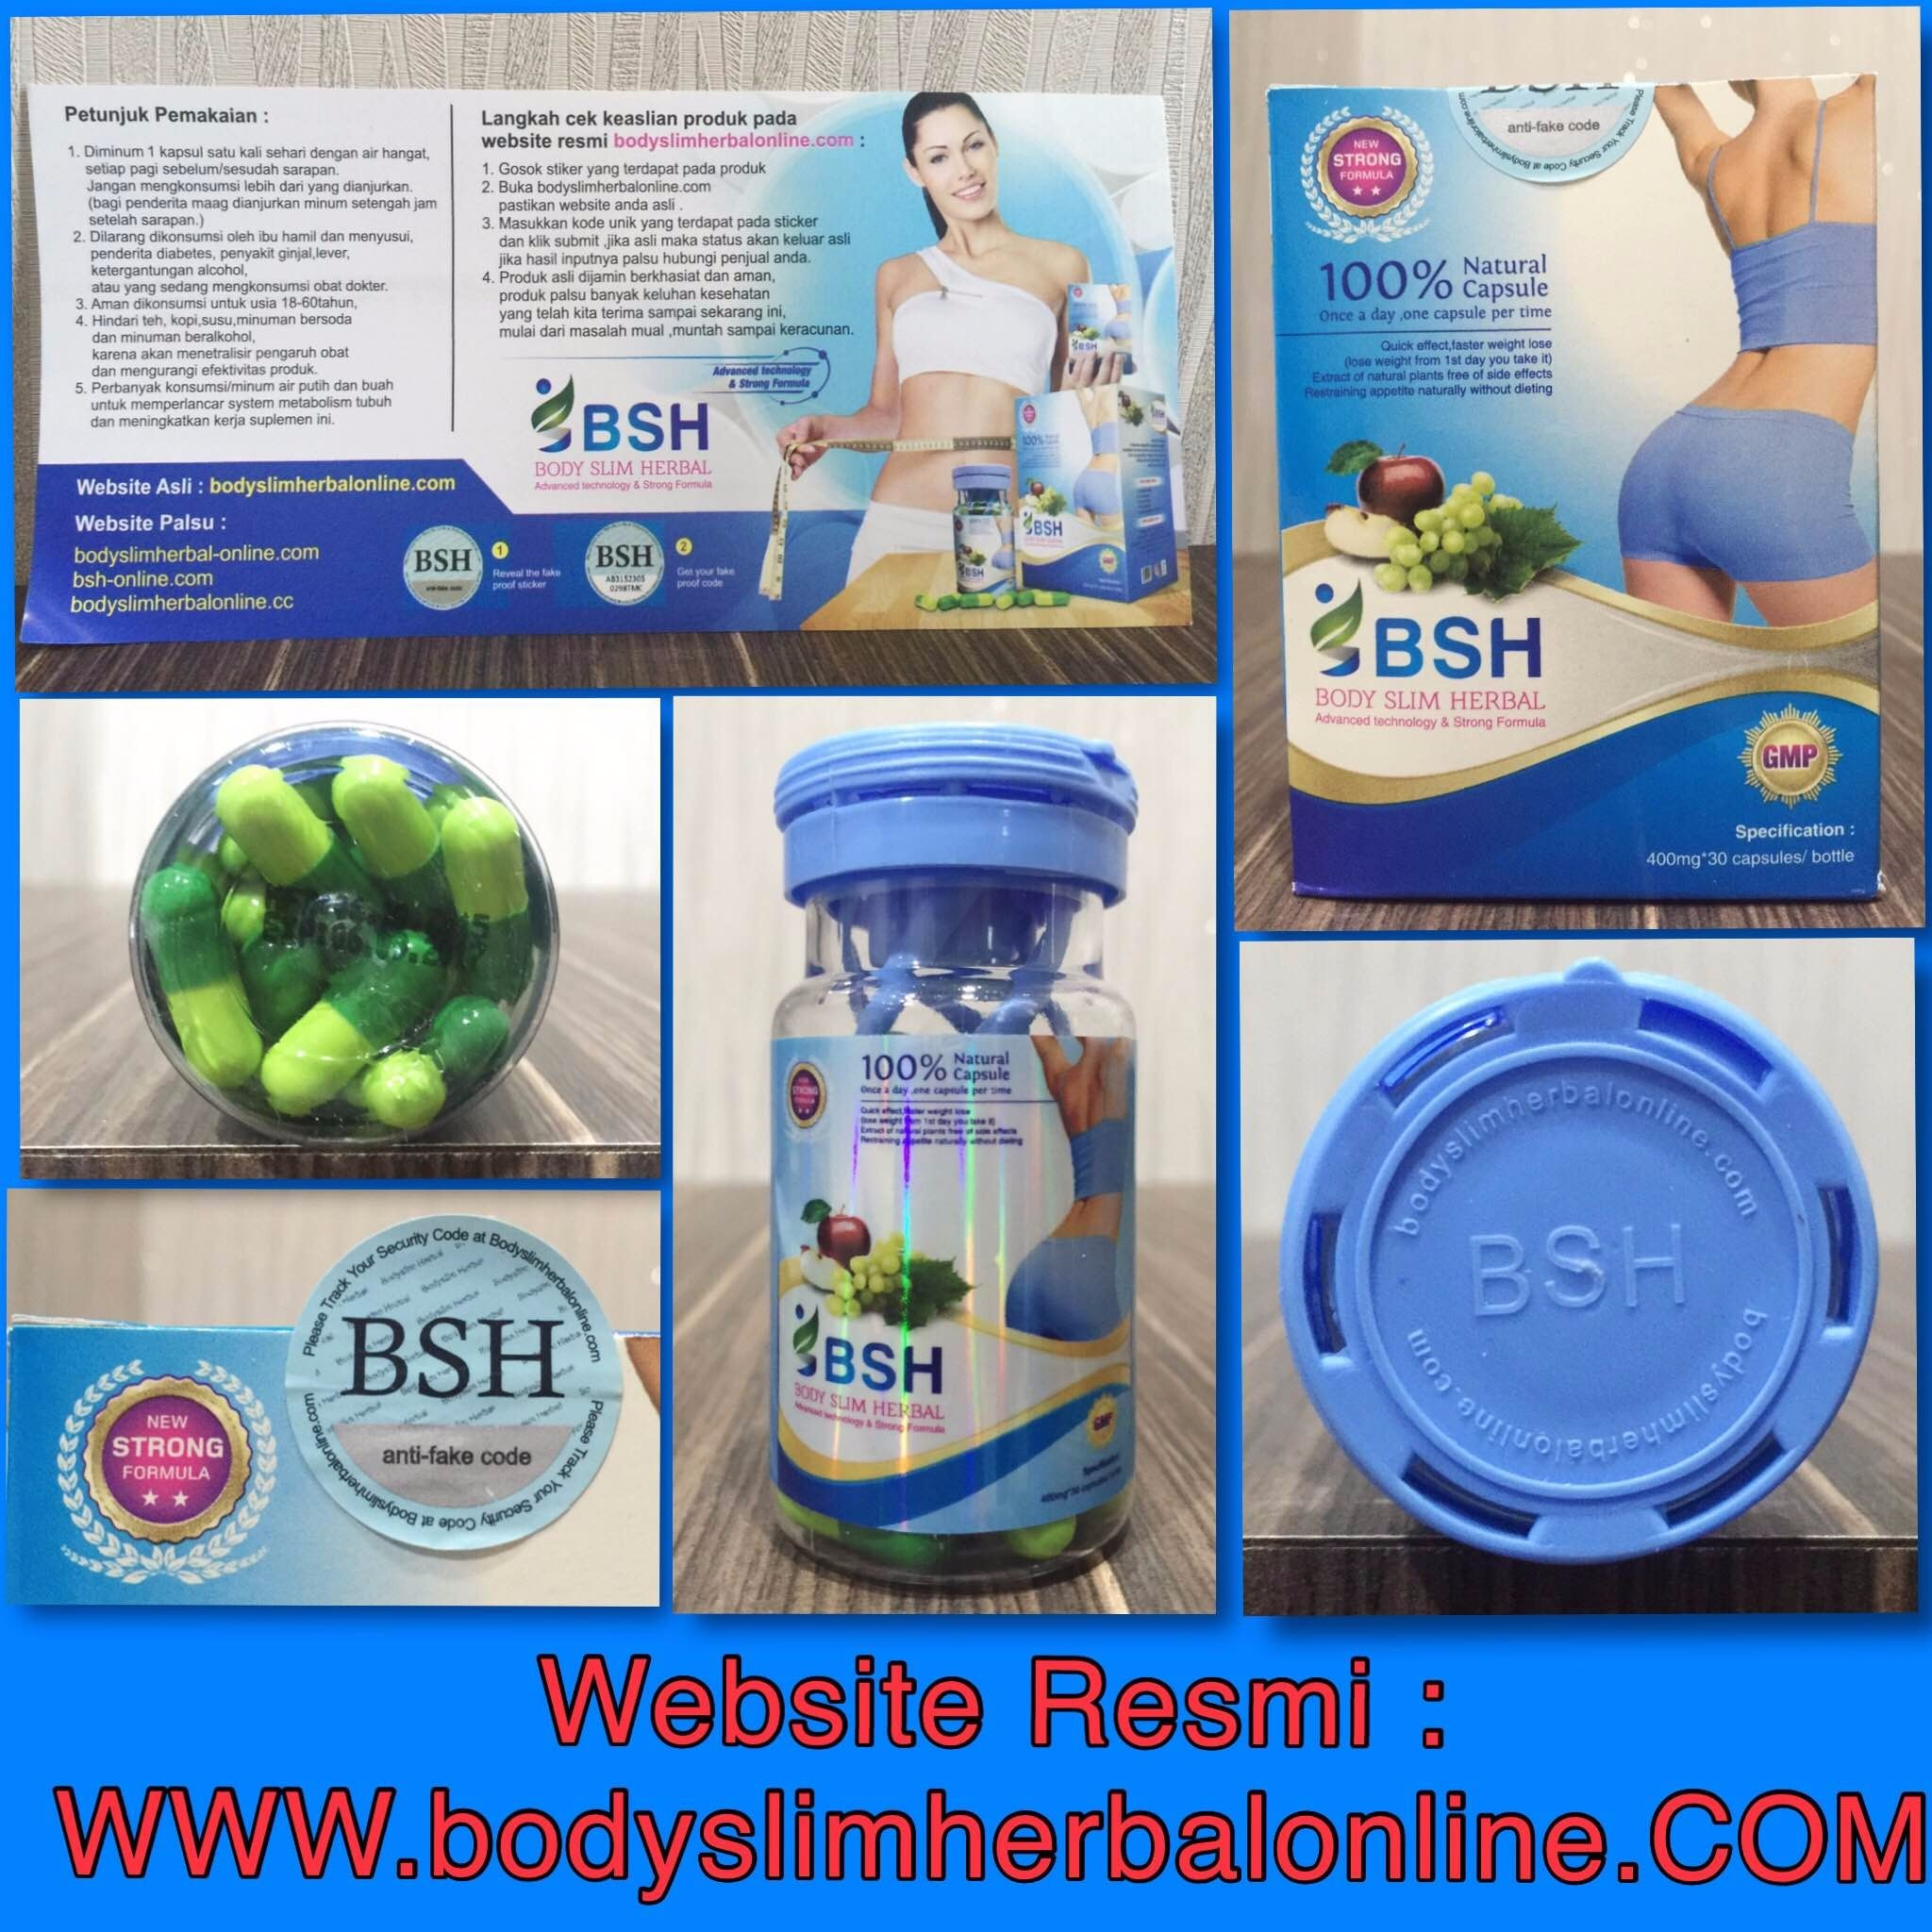 BSH Original Body Slim Herbal